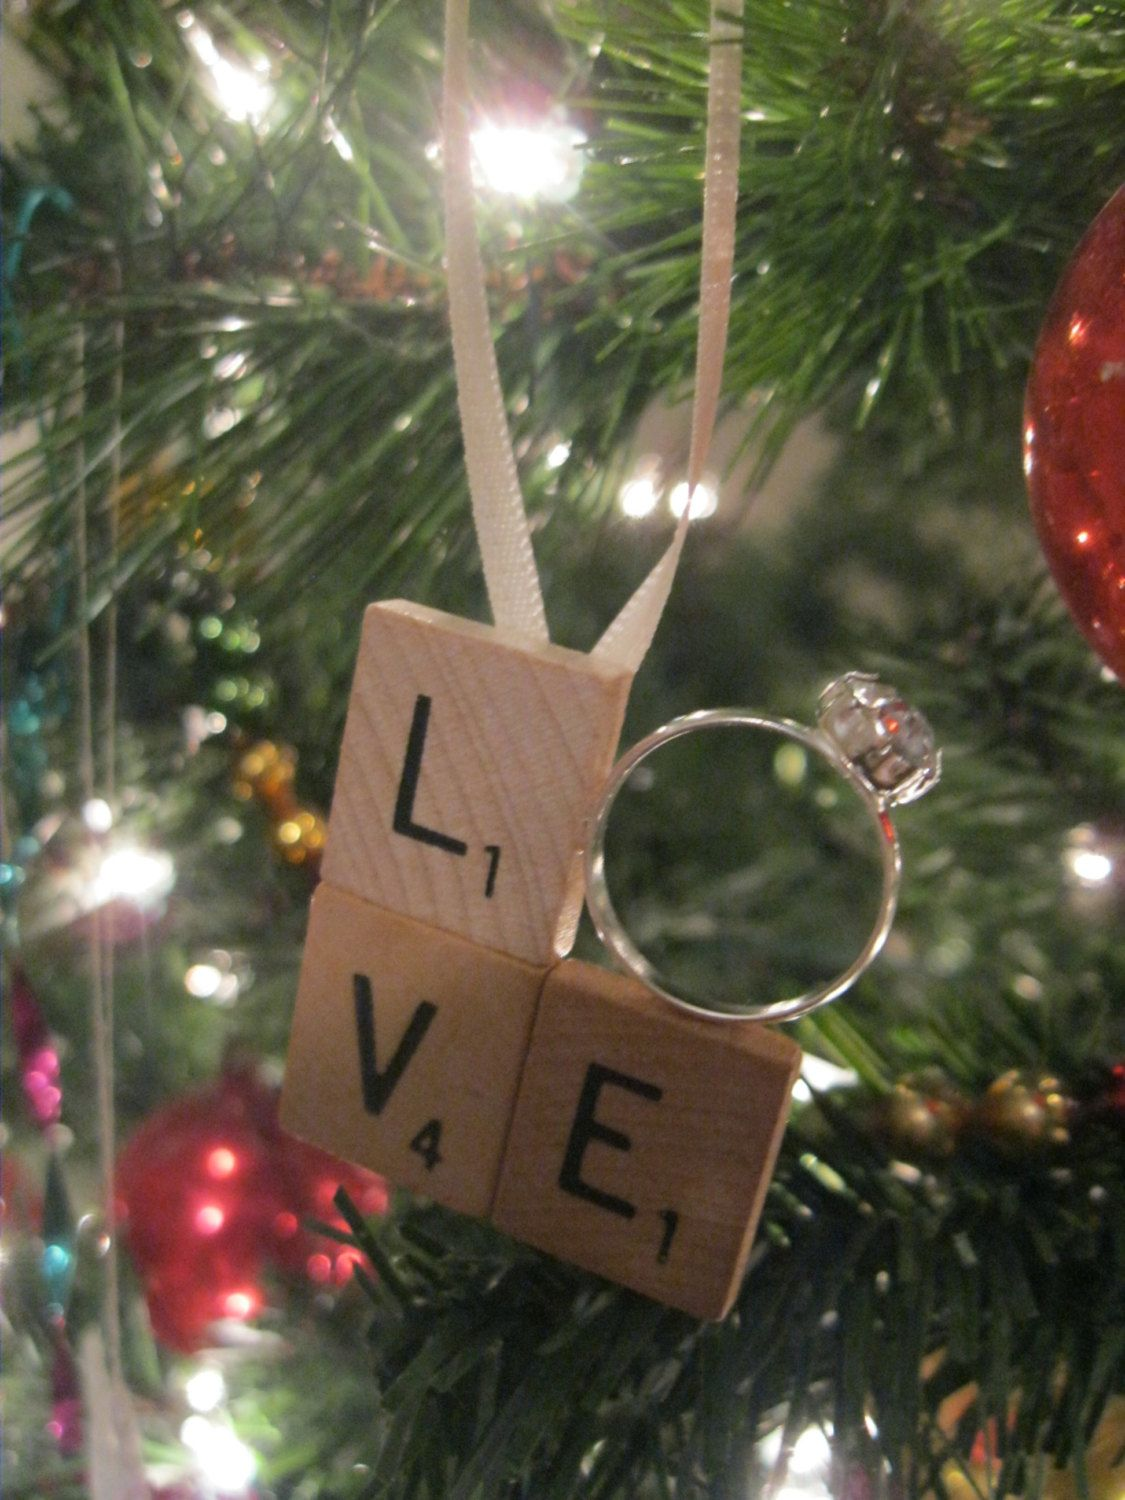 First married christmas ornament - Scrabble Tile Love Engagement Ring Christmas Ornament Just Engaged Just Married First Christmas